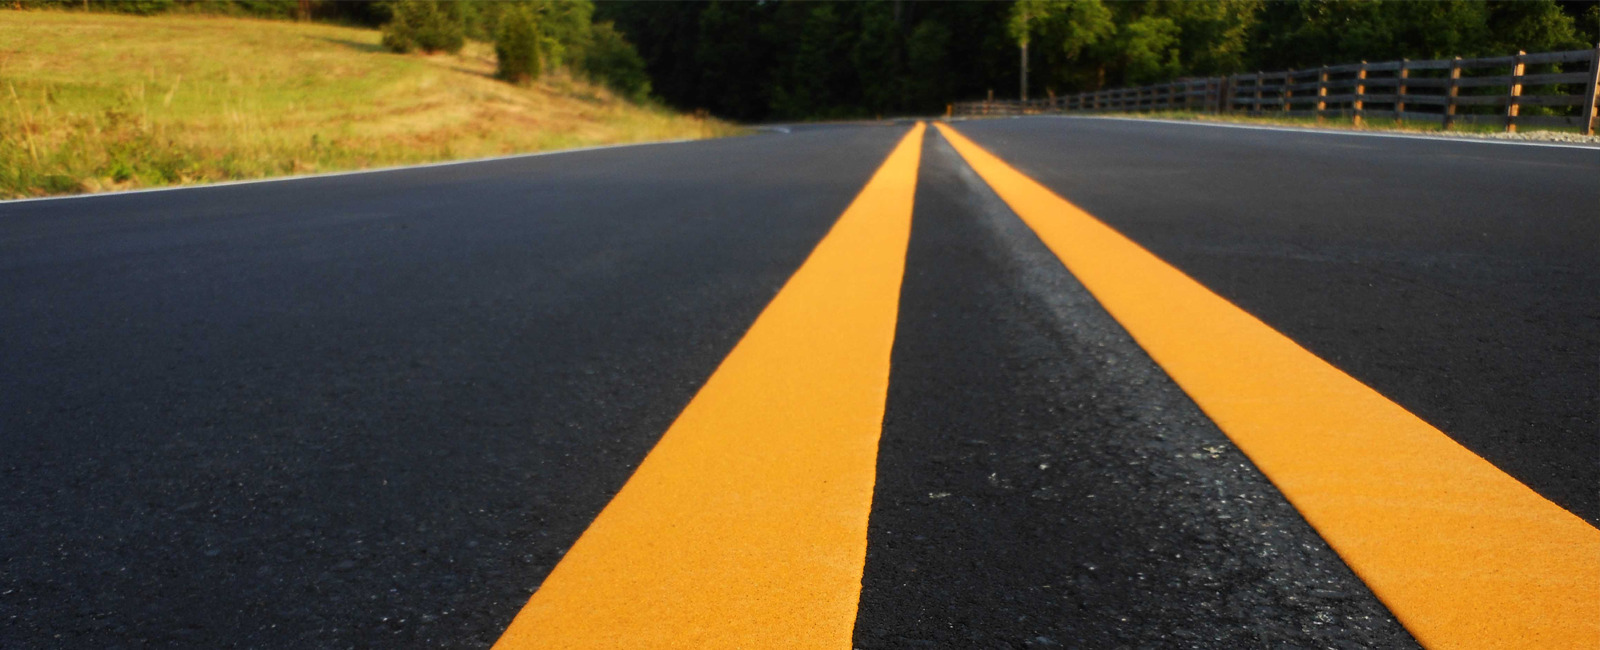 Thermoplastic Road Striping